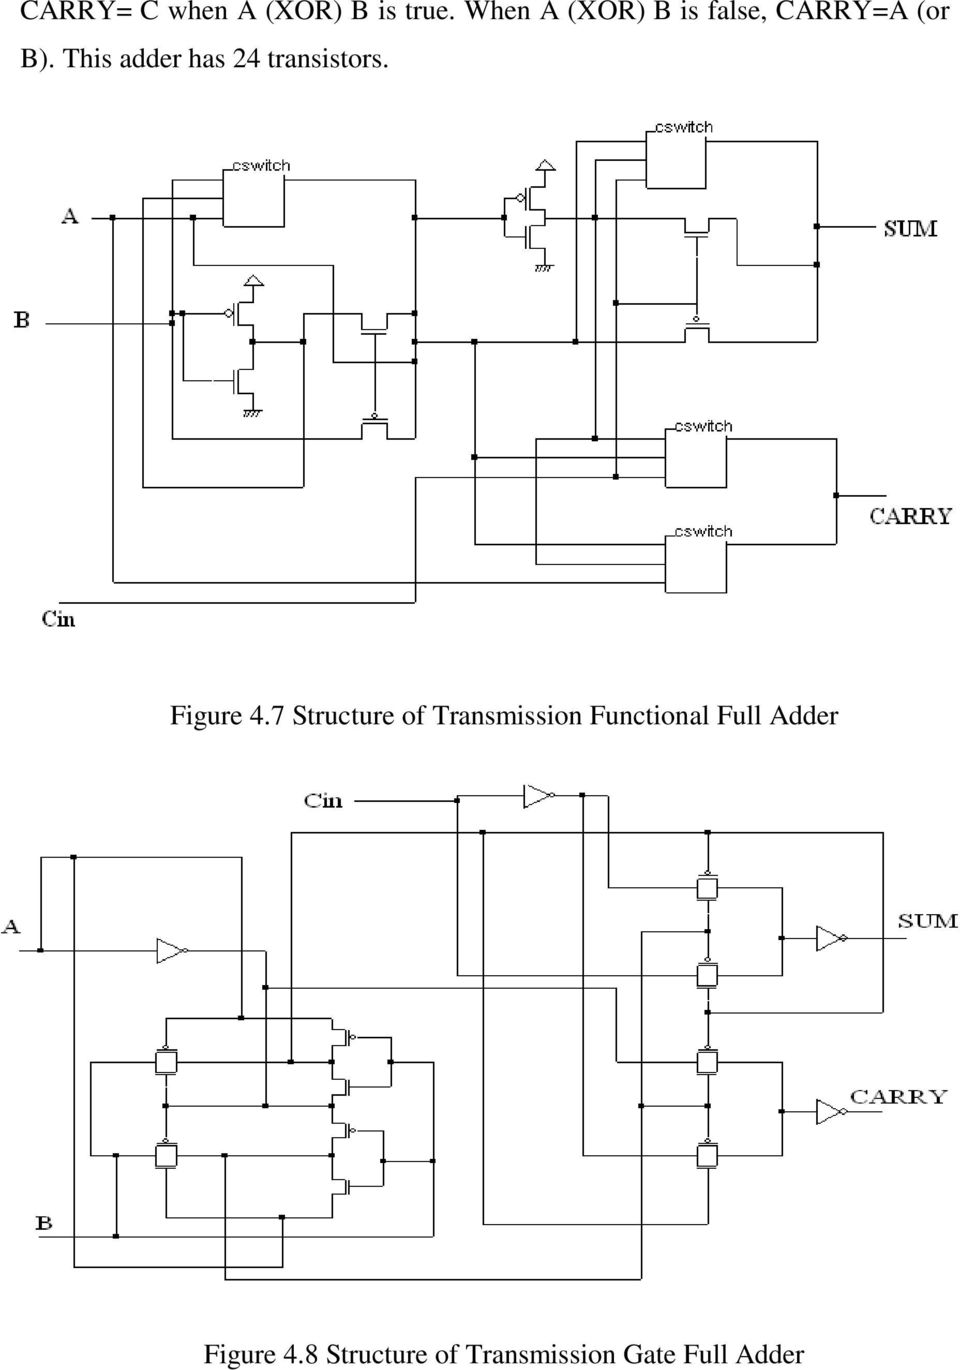 New Adder Cells Are Useful For Designing Larger Circuits Despite Integrated Circuit 1bit Full Cell In Ic Not Working As This Has 24 Transistors Figure 4